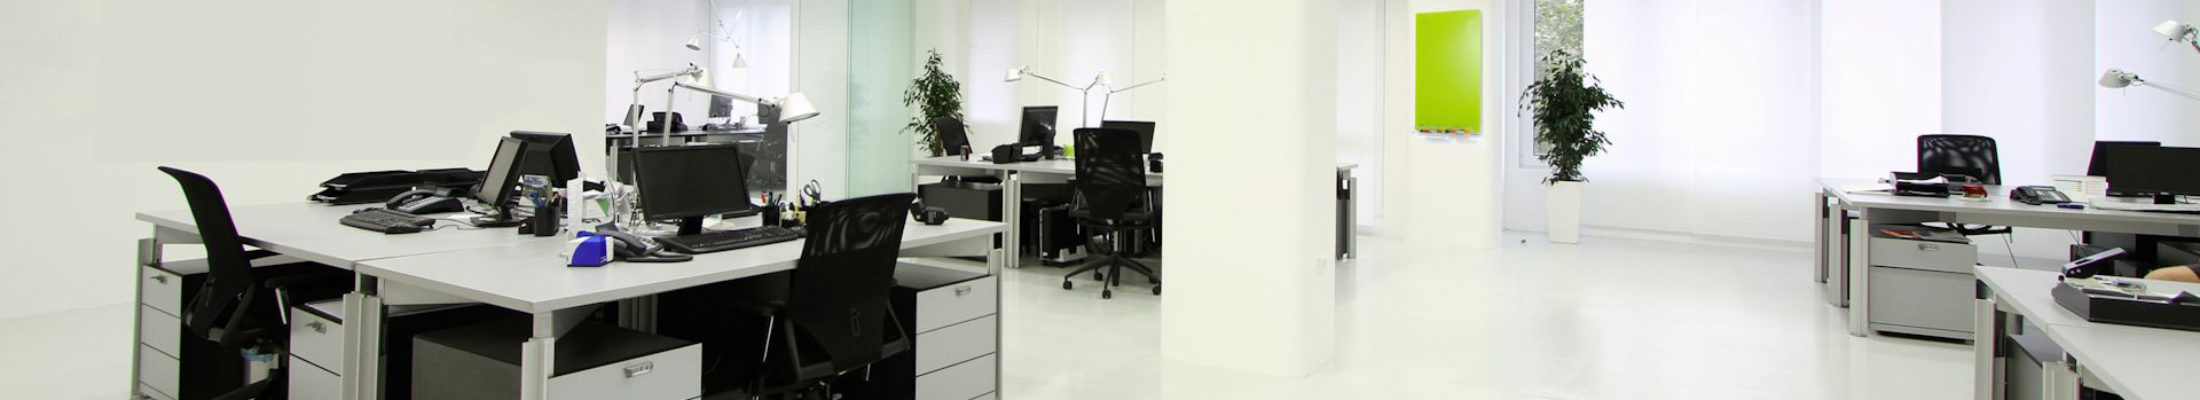 http://greenfacilities.co.uk/wp-content/uploads/2017/01/office-cleaning2-2200x400.jpg